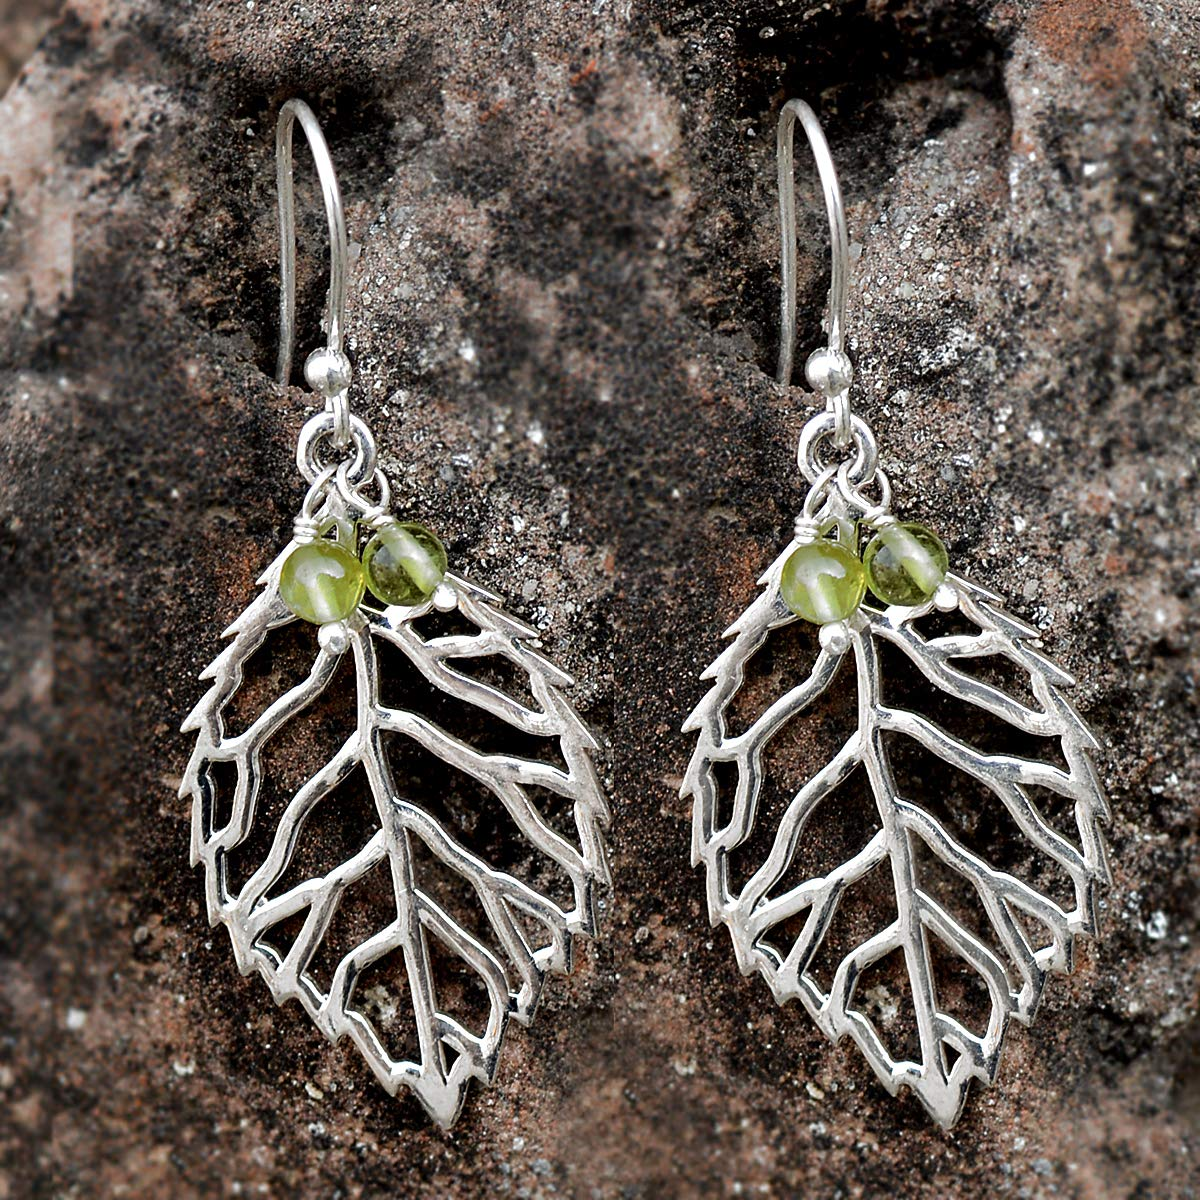 Saamarth Impex Peridot Gemstone 925 Sterling Silver Earring PG-156041